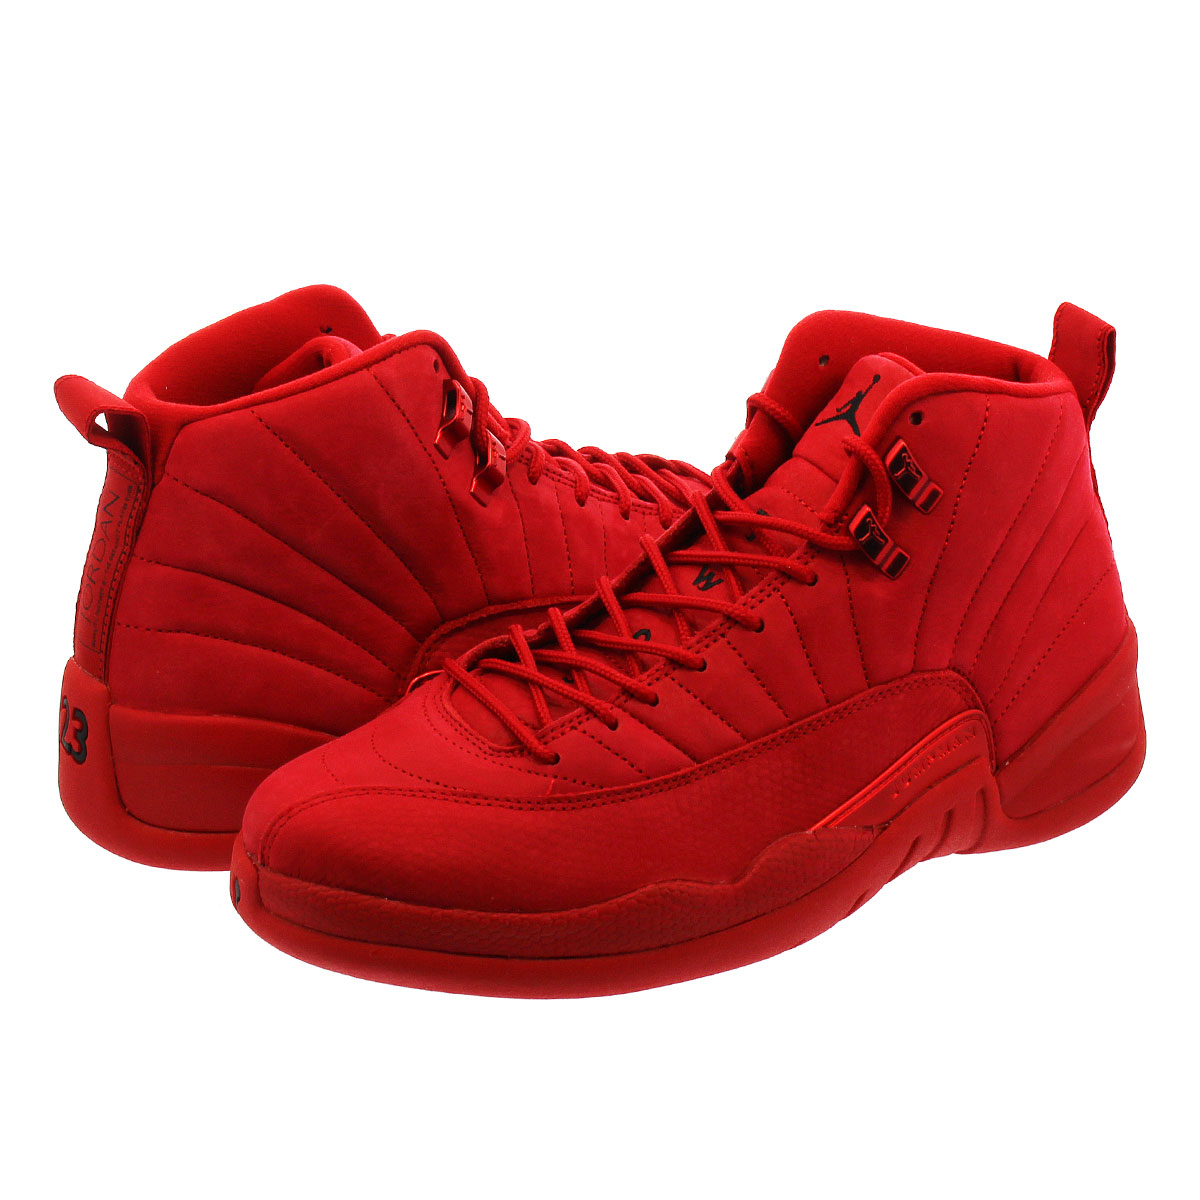 sale retailer 64c6a e02b6 NIKE AIR JORDAN 12 RETRO Nike Air Jordan 12 nostalgic GYM RED/BLACK  130,690-601